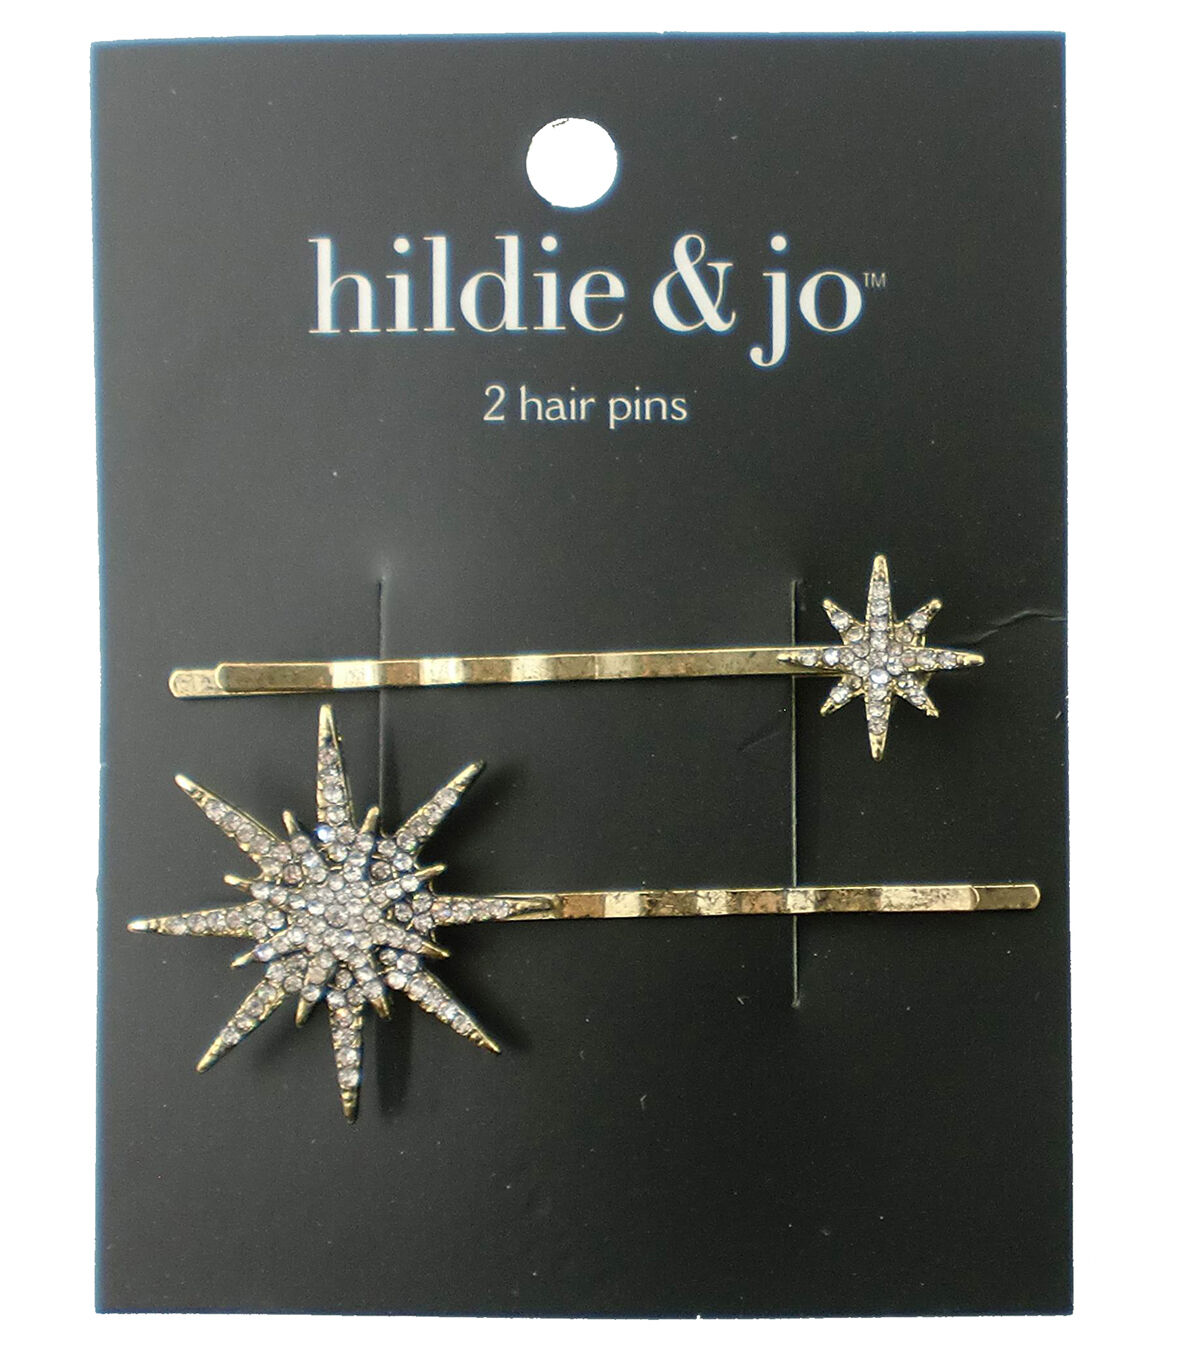 Vintage Hair Accessories: Combs, Headbands, Flowers, Scarf, Wigs hildie  jo 2 Pack Gold Hair Pins - Clear Round Crystals Stars $5.99 AT vintagedancer.com